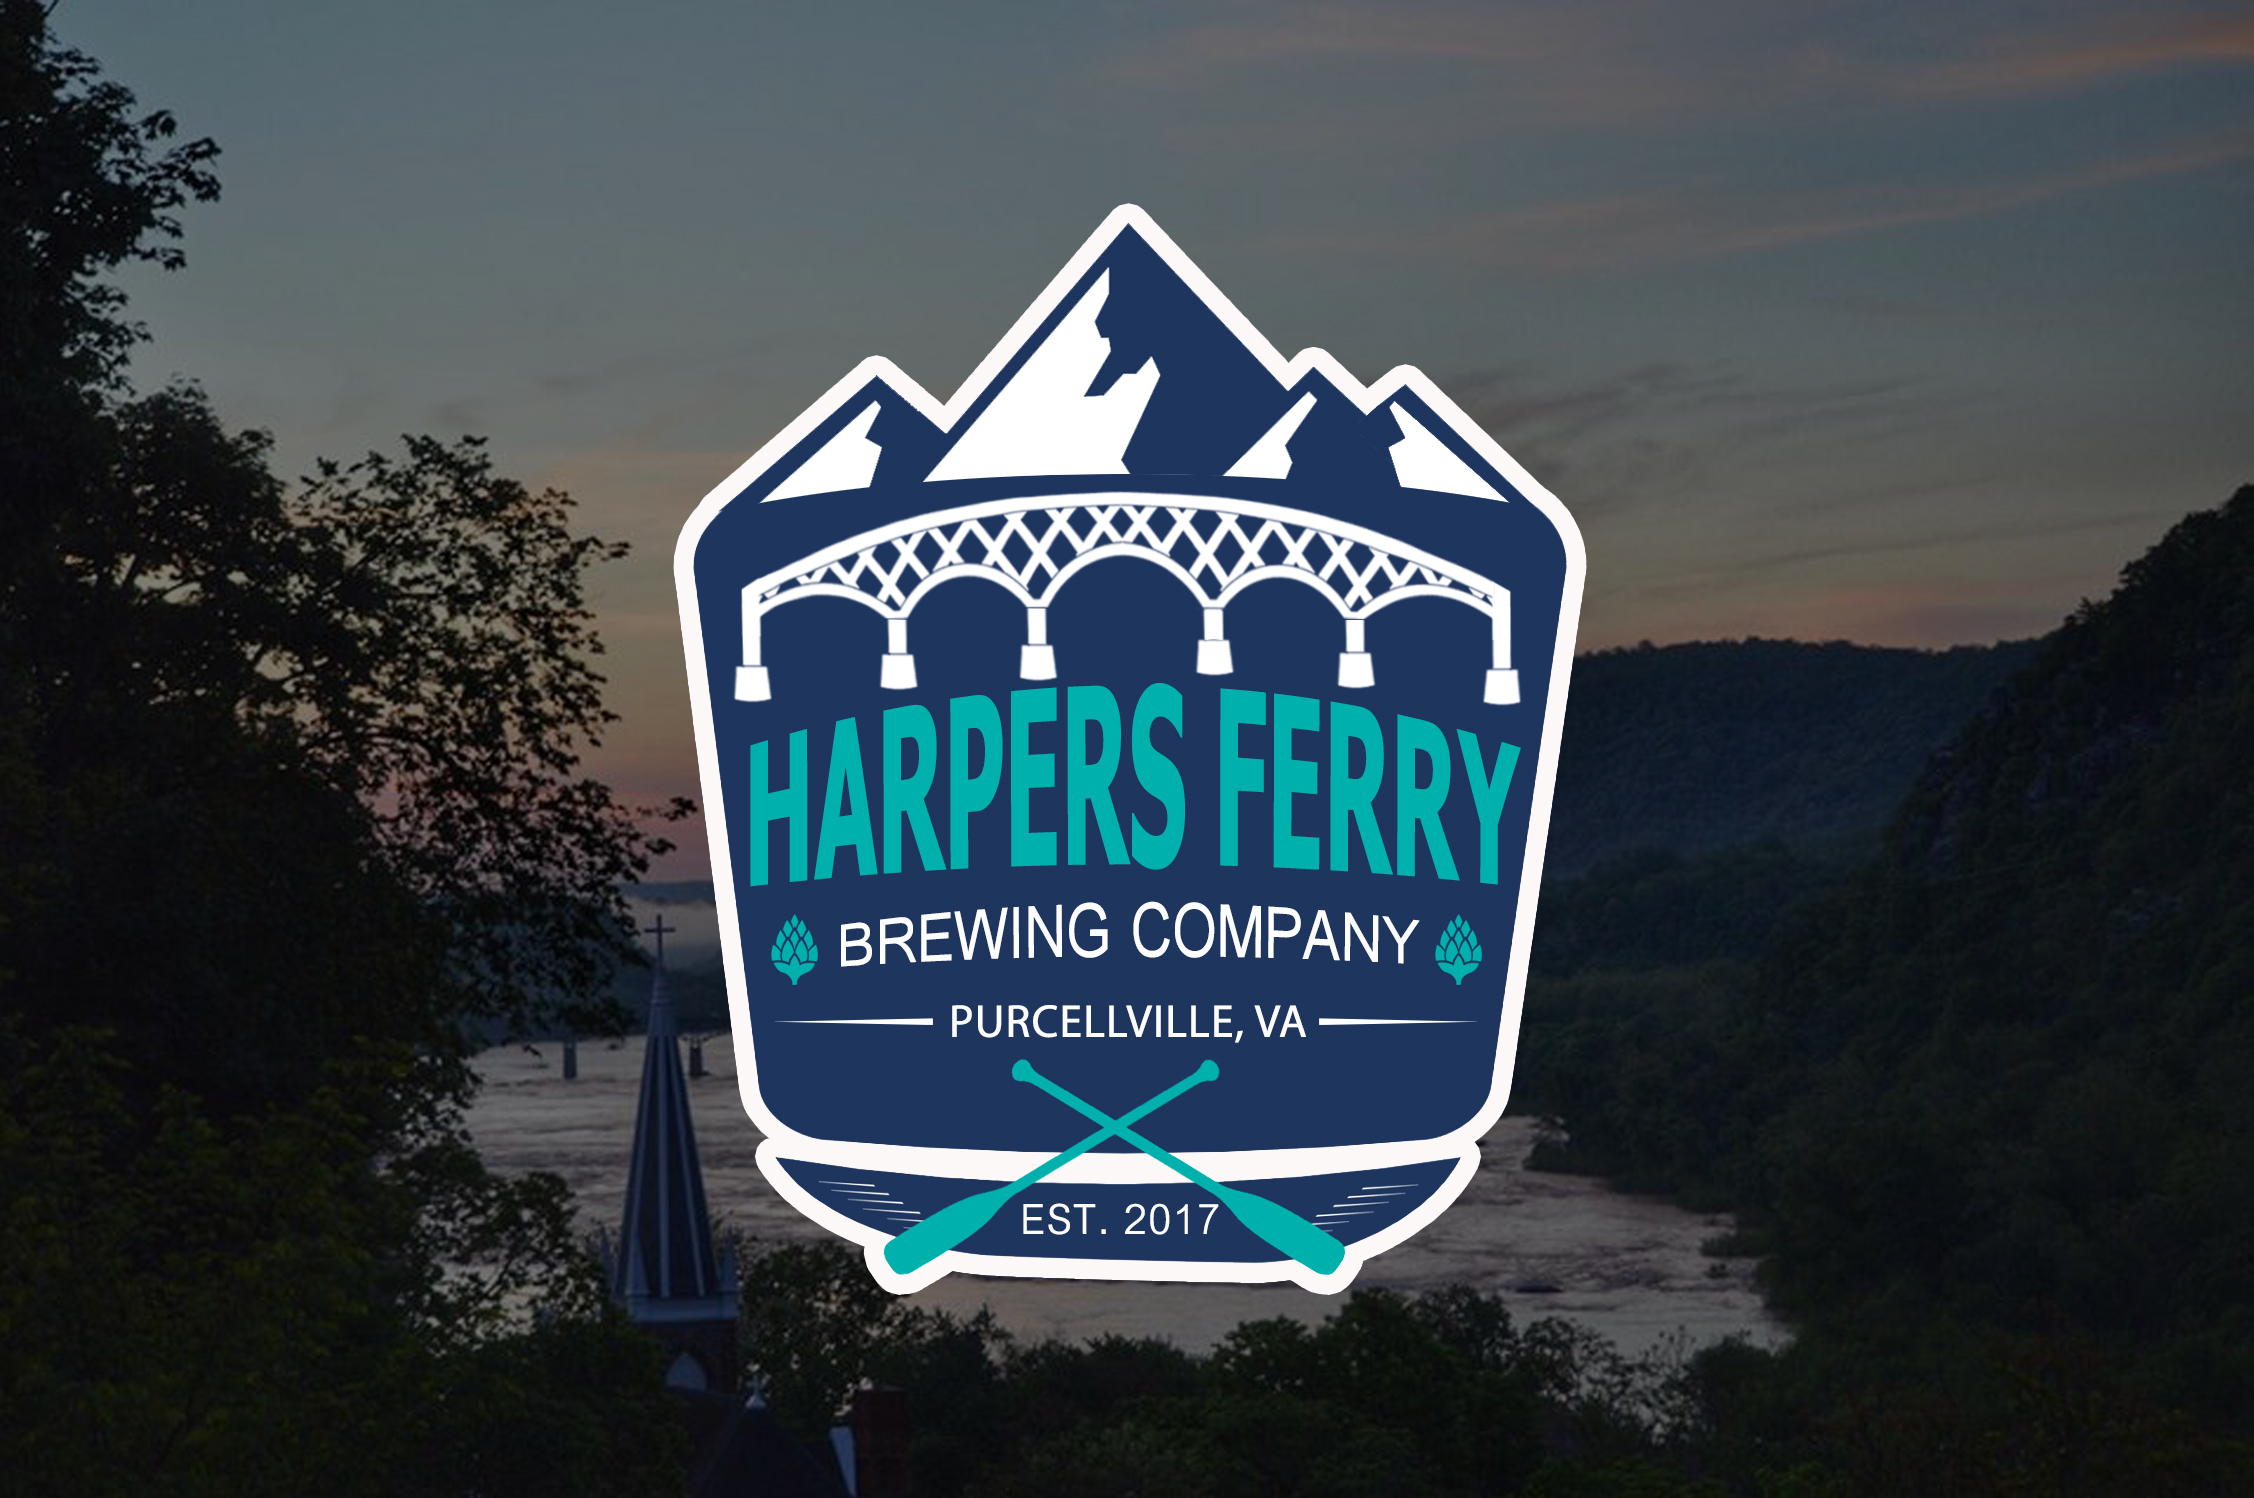 Logo Design by JSDESIGNGROUP - Entry No. 59 in the Logo Design Contest Unique Logo Design Wanted for Harpers ferry brewing company.